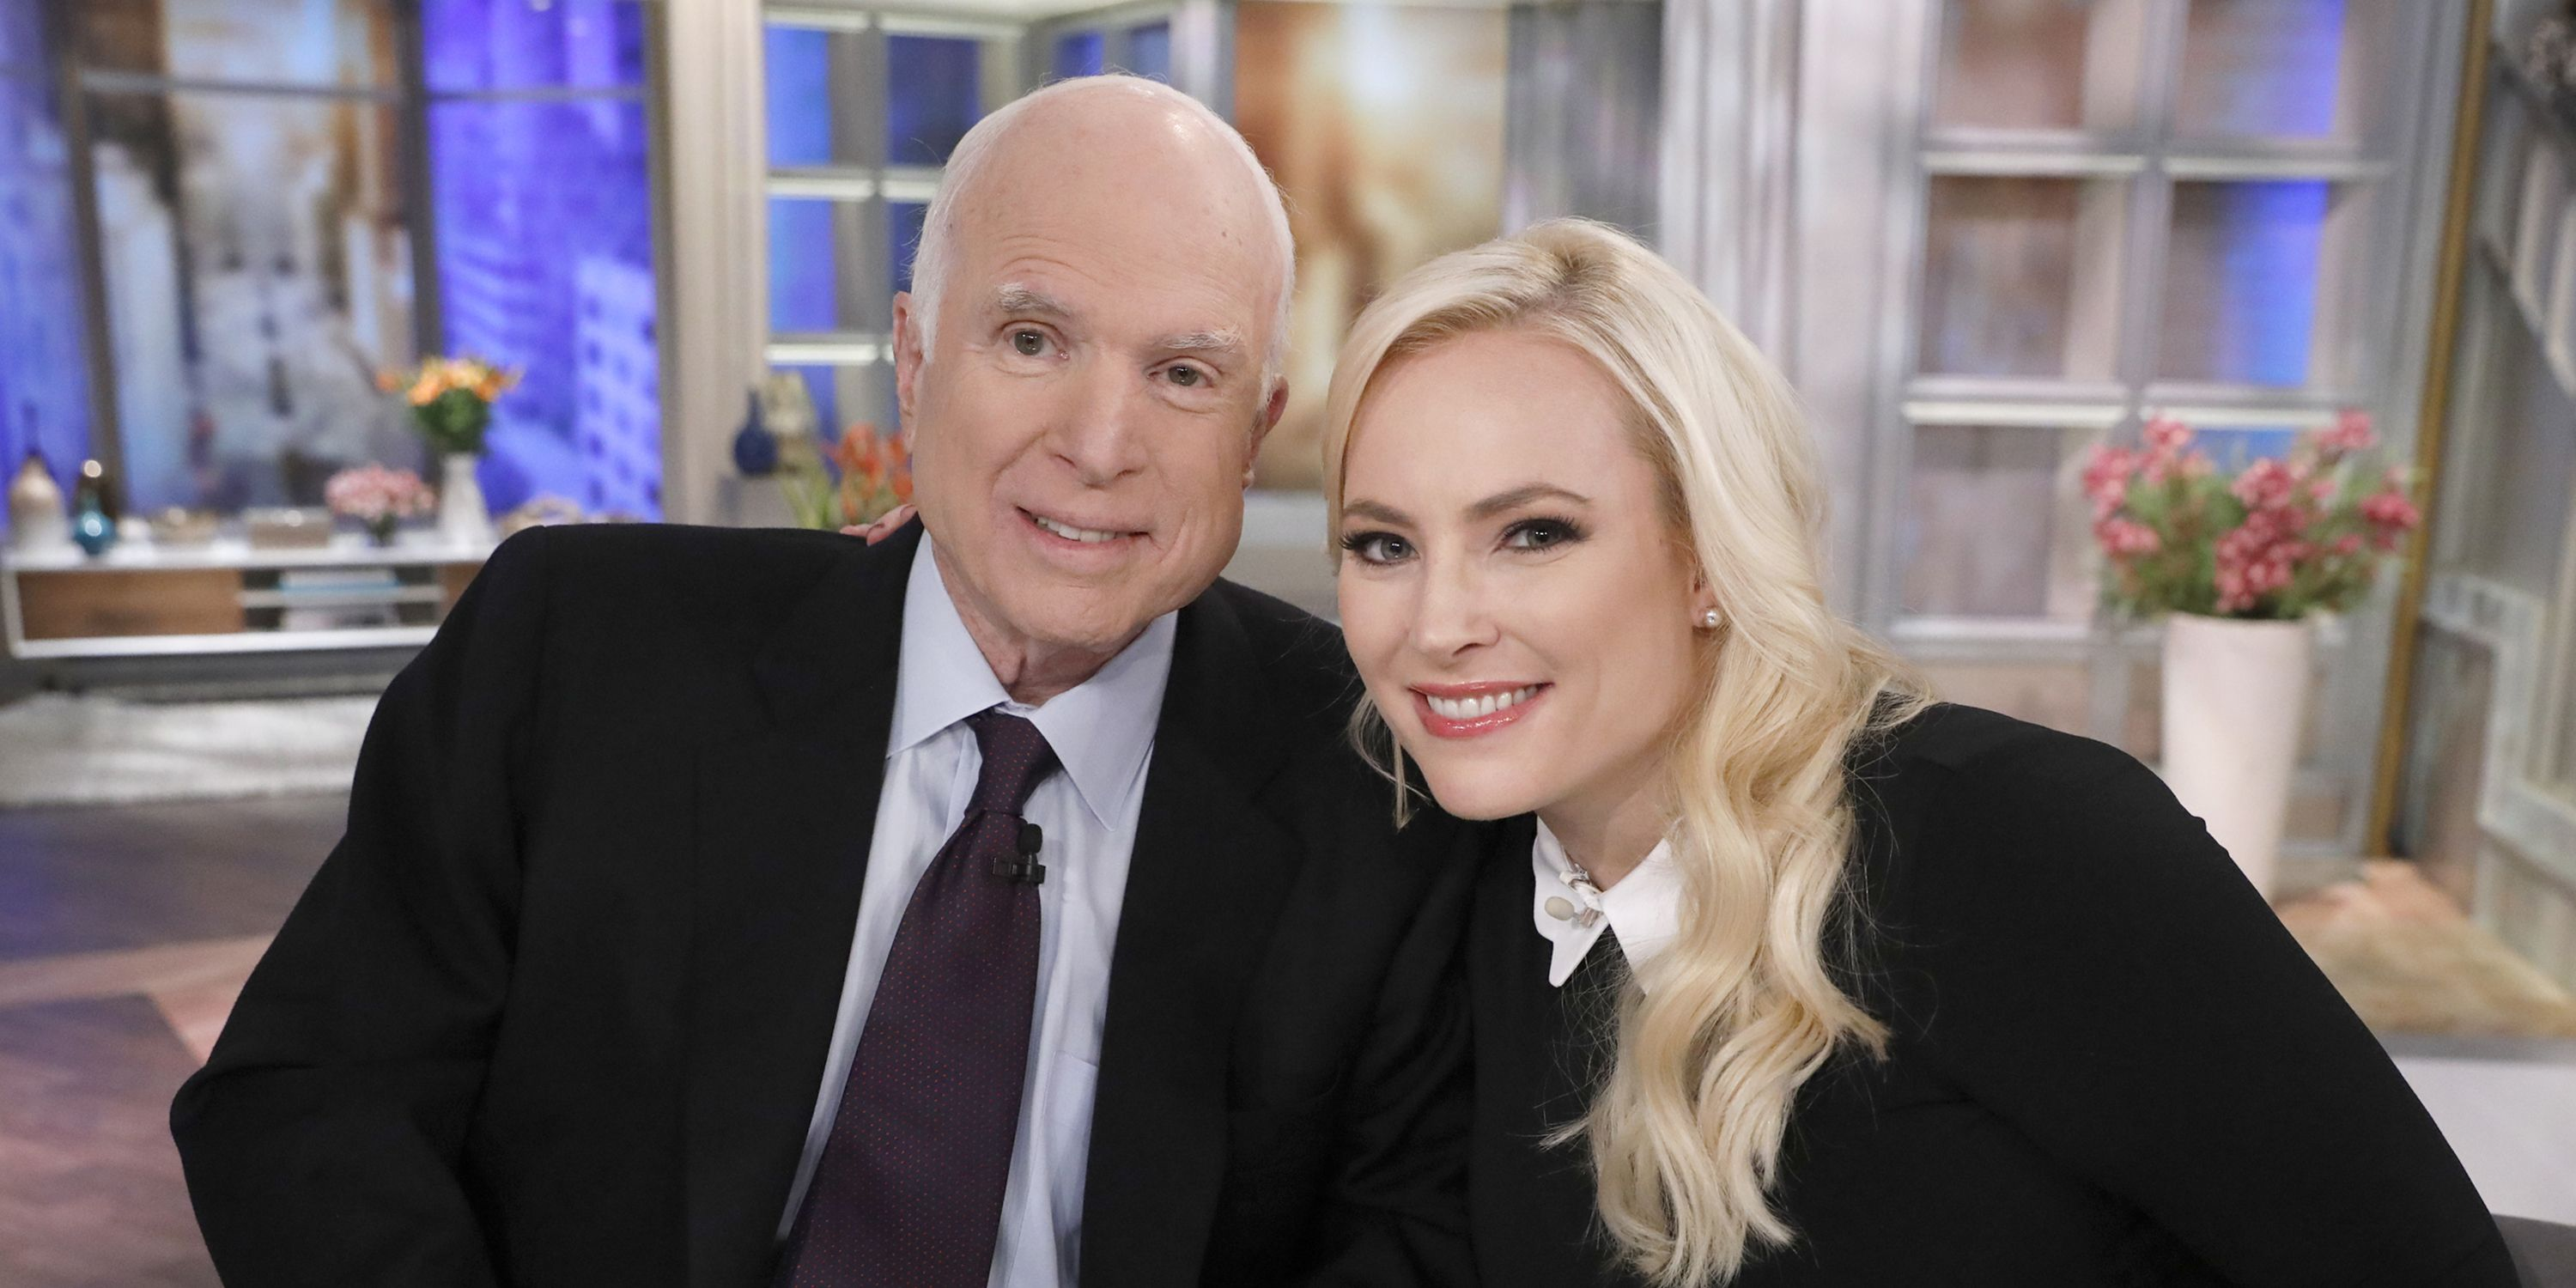 John McCain, Meghan McCain On 'The View'